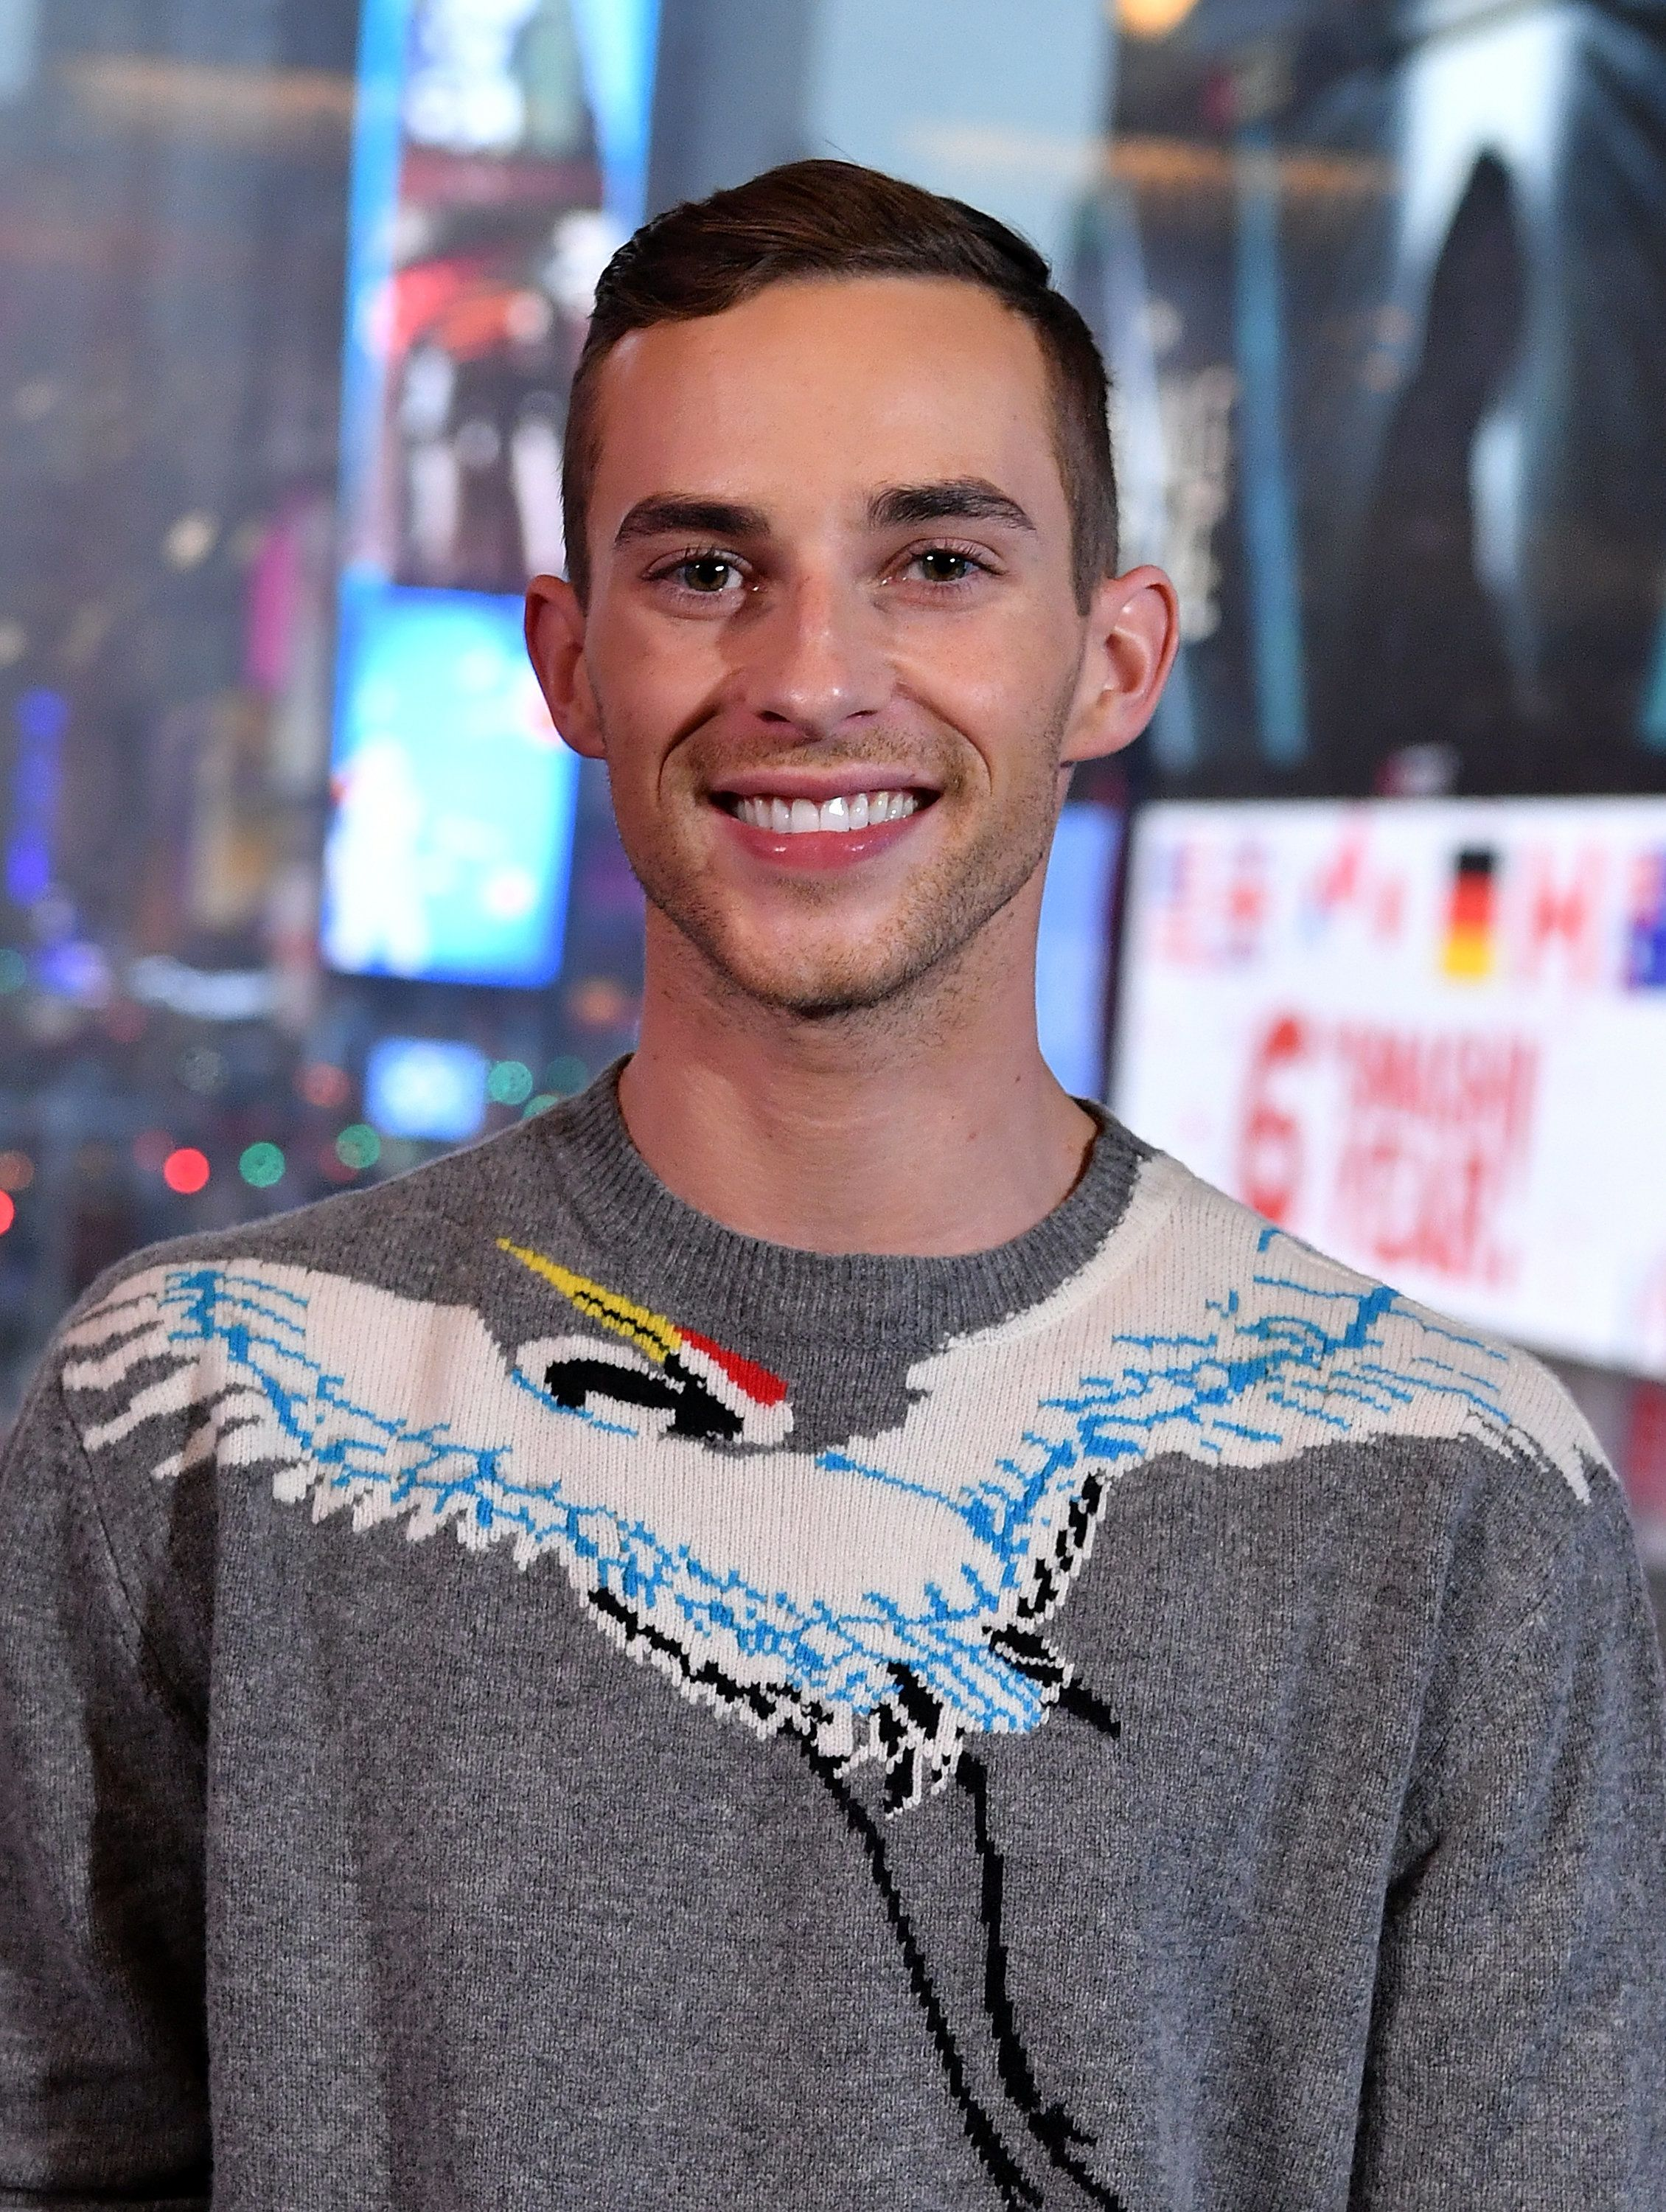 NEW YORK, NY - MARCH 07:  2018 Winter Olympics Bronze medal winner, figure skater Adam Rippon visits 'Extra' at Renaissance New York Times Square hotel at Times Square on March 7, 2018 in New York City.  (Photo by Slaven Vlasic/Getty Images)